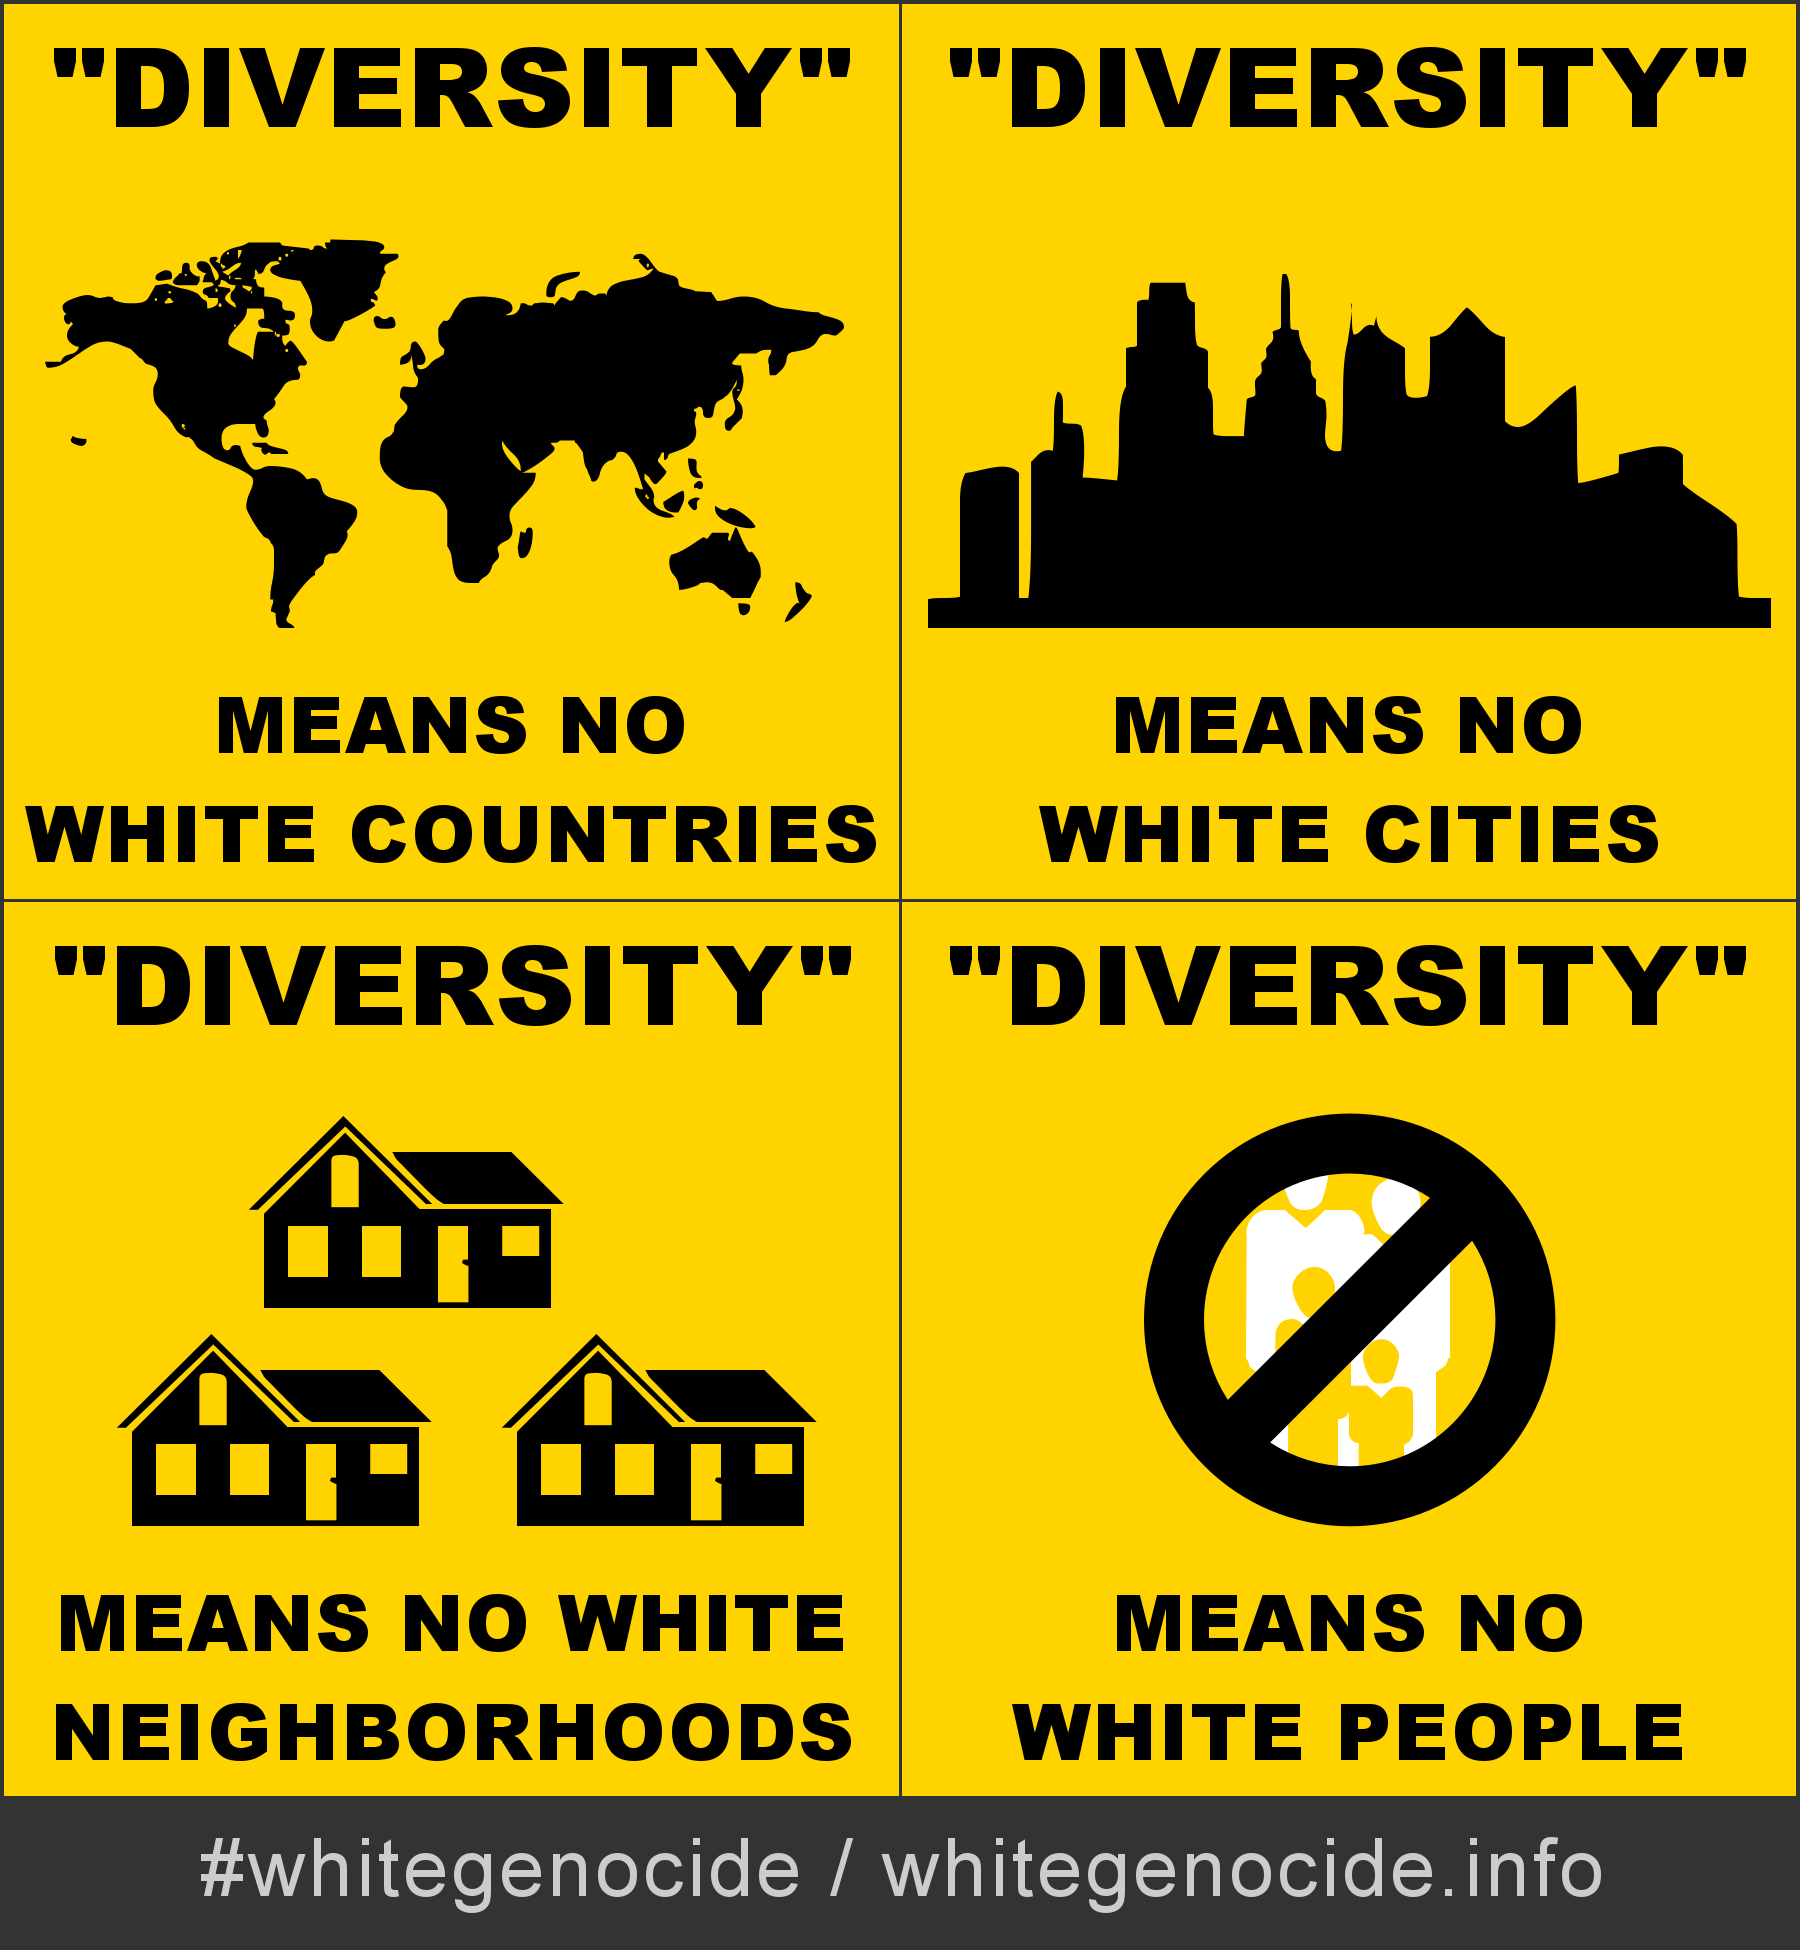 graphic - diversity means no white